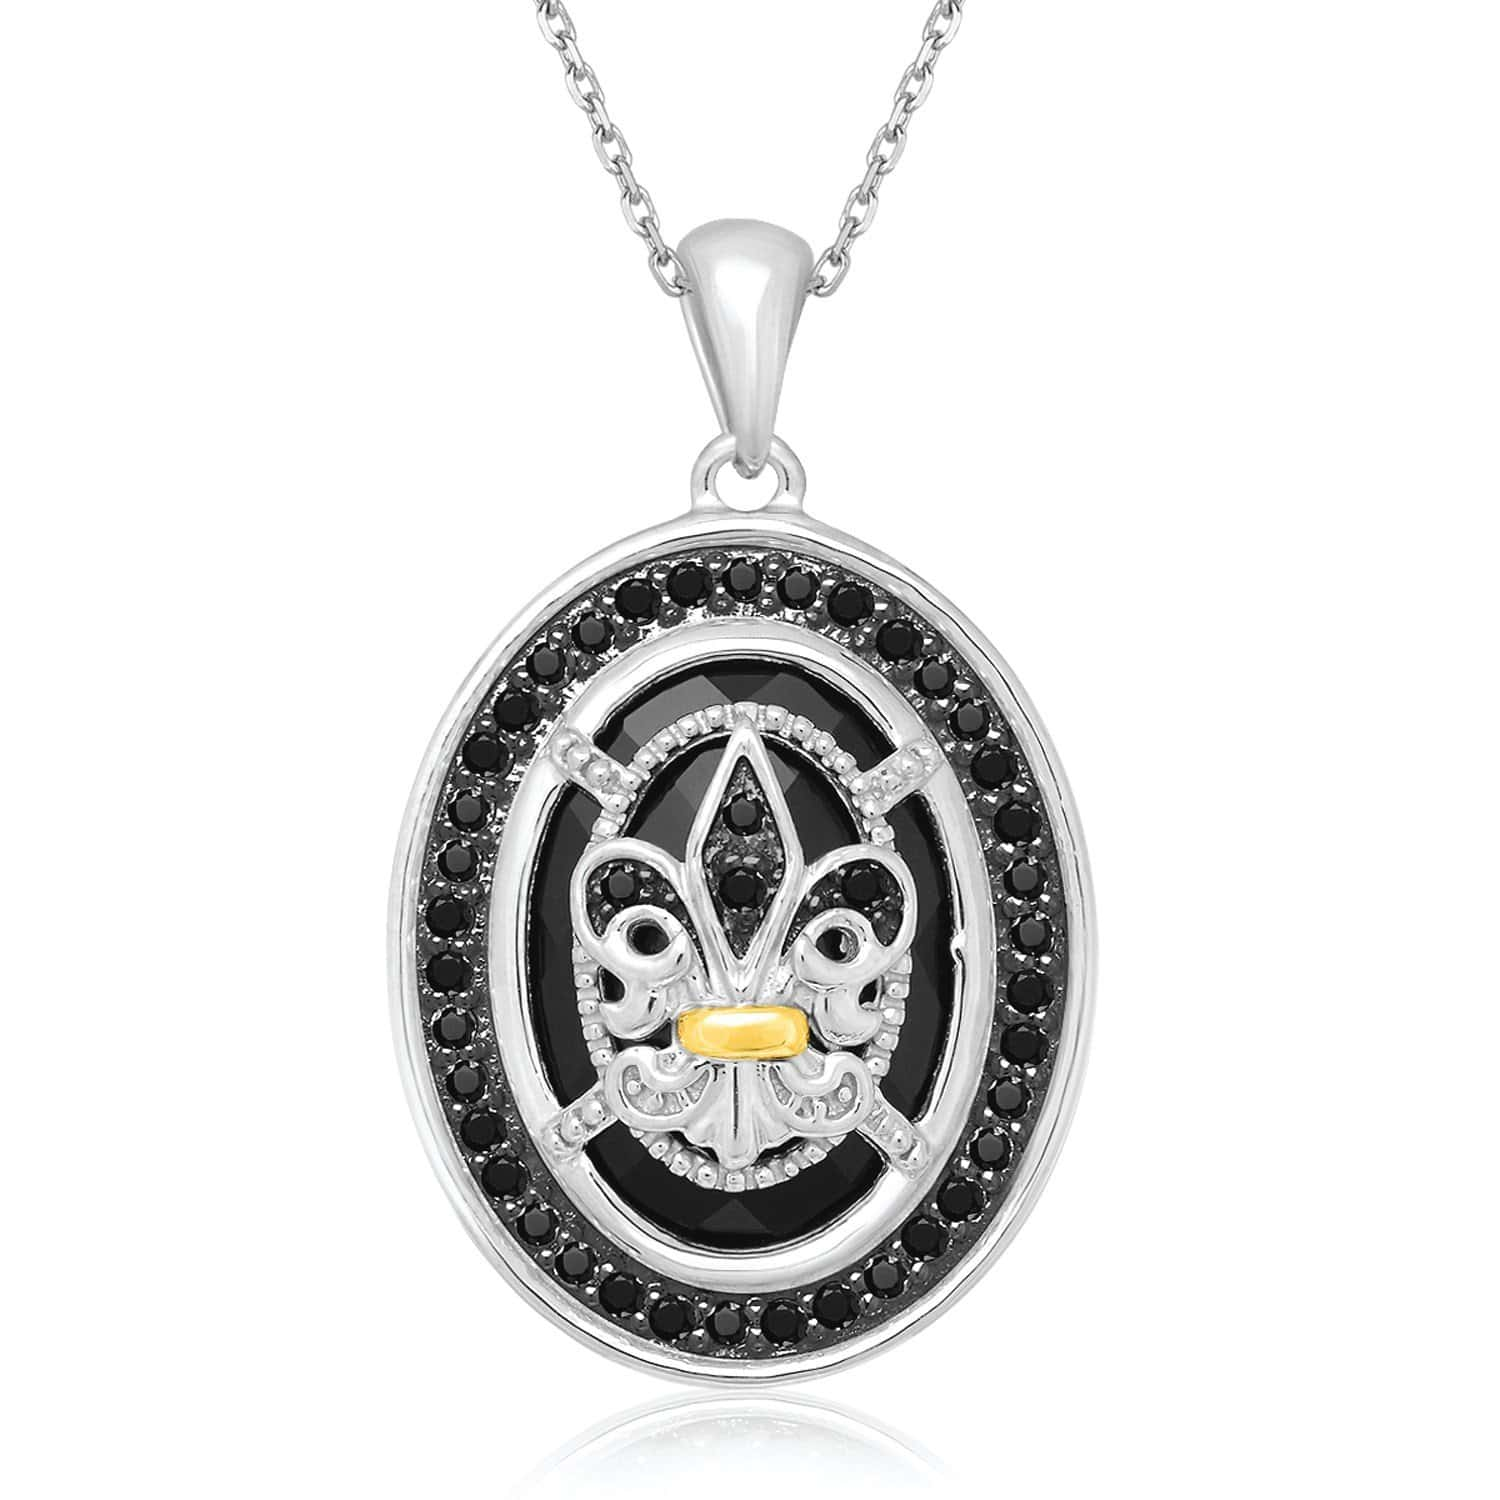 Anadx collection women jewelry fine pendants aloadofball Images